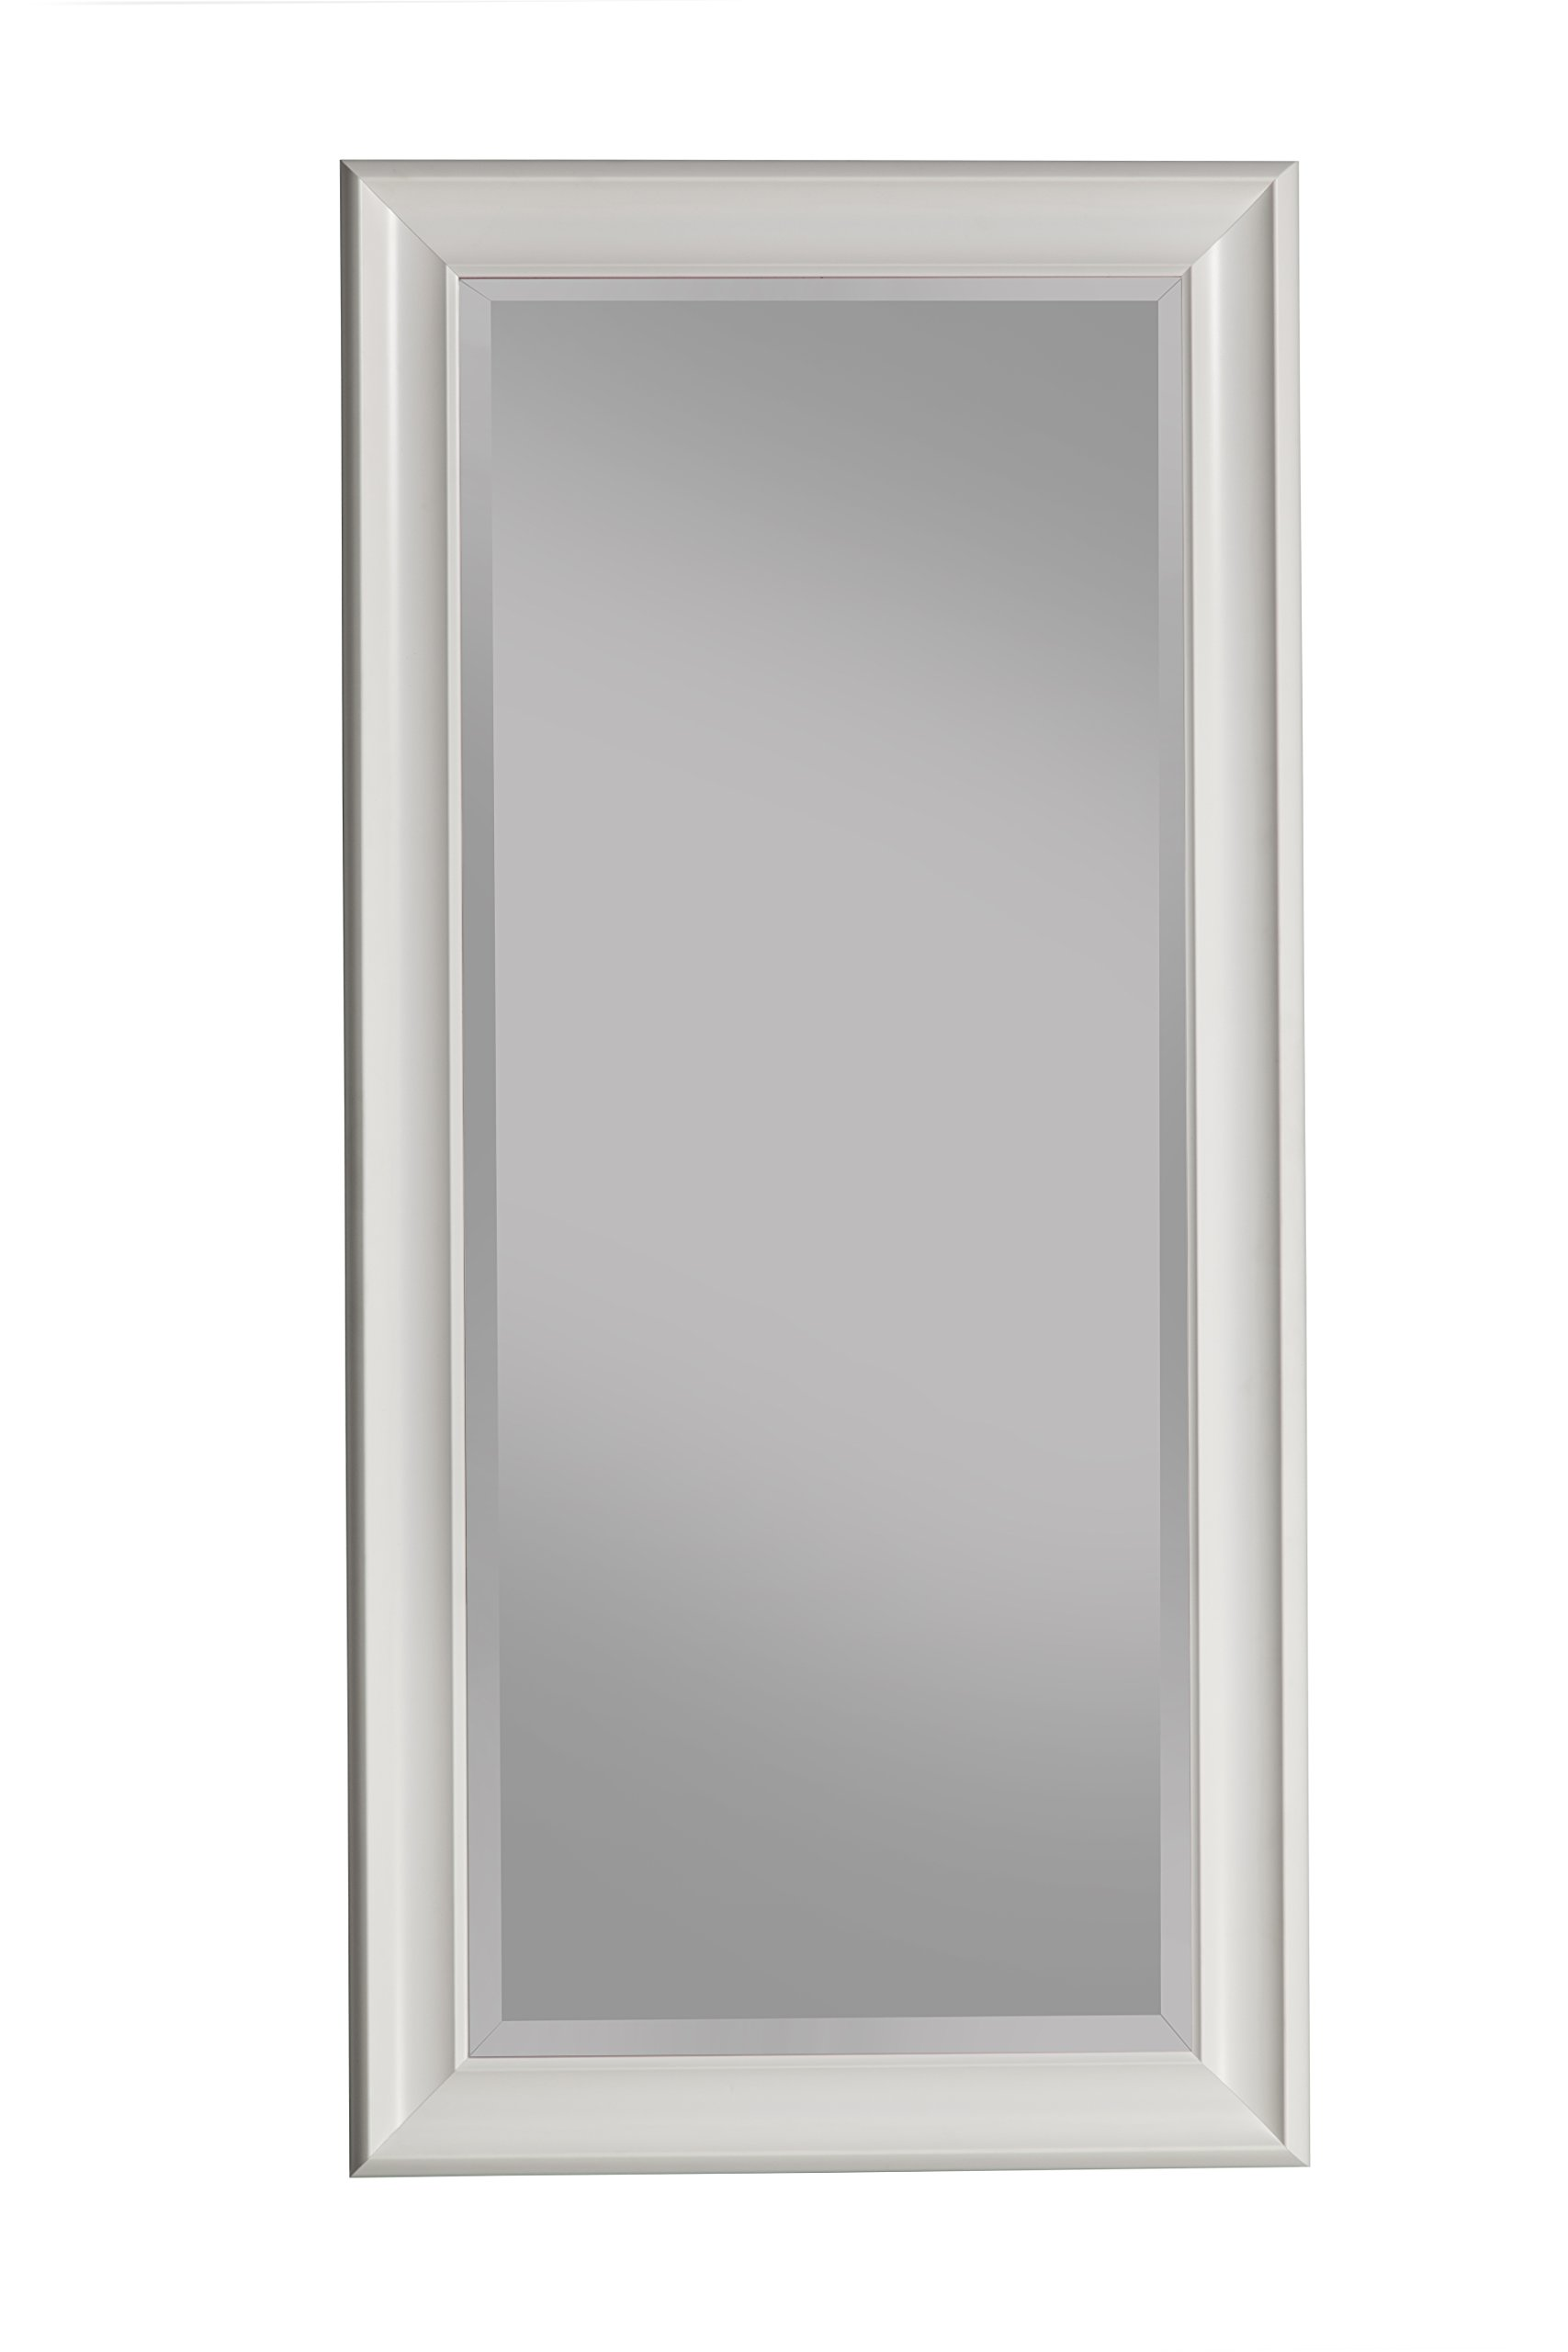 Sandberg Furniture Frost white Full Length Leaner Mirror by Sandberg Furniture